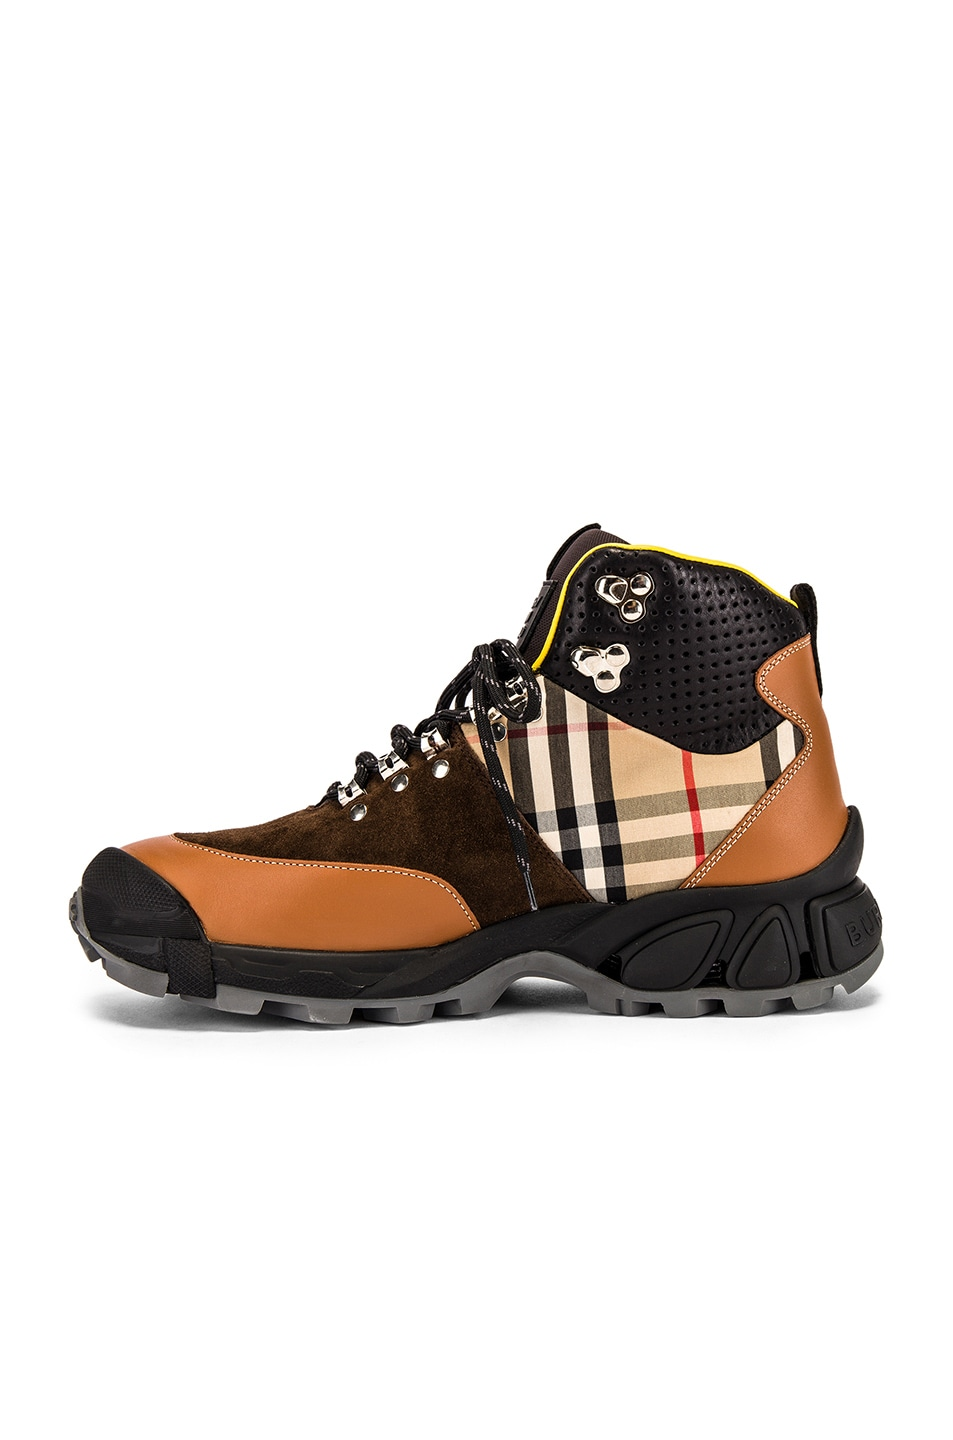 Image 5 of Burberry Tor M Hiking Boot in Archive Beige